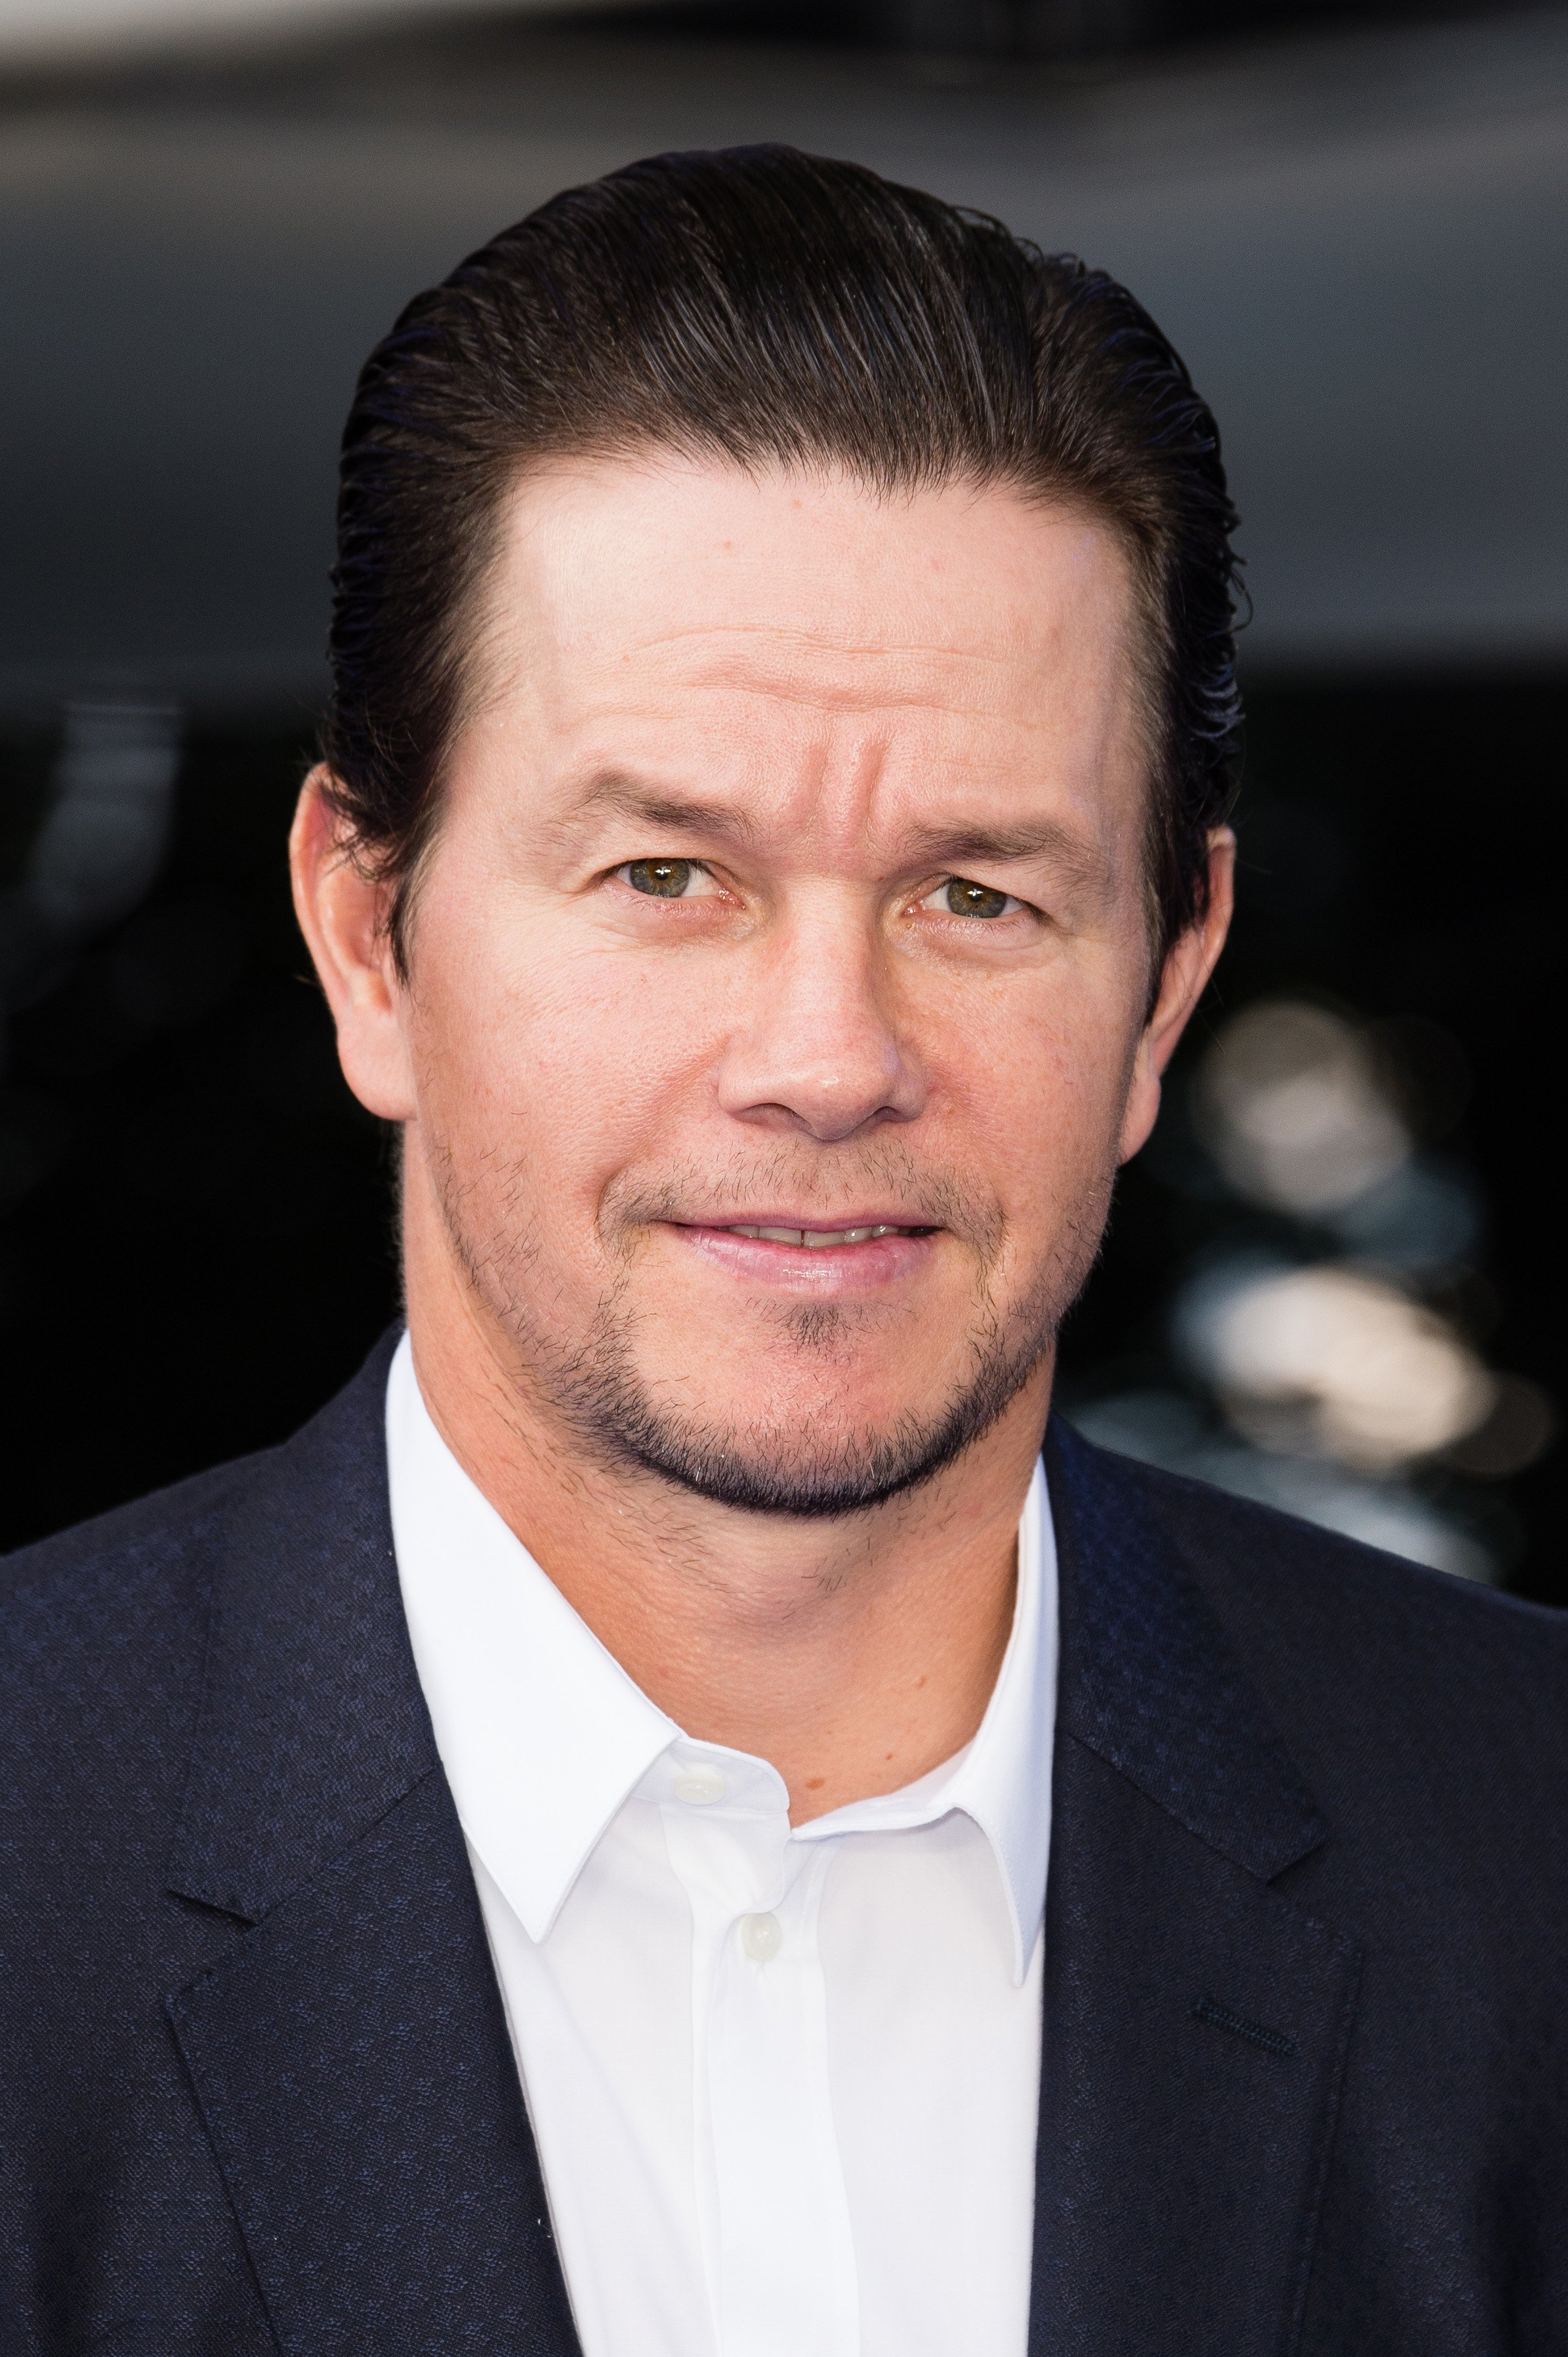 """Mark Wahlberg attends the premiere of """"Transformer: The Last Knight"""" in London, England on June 18, 2017 